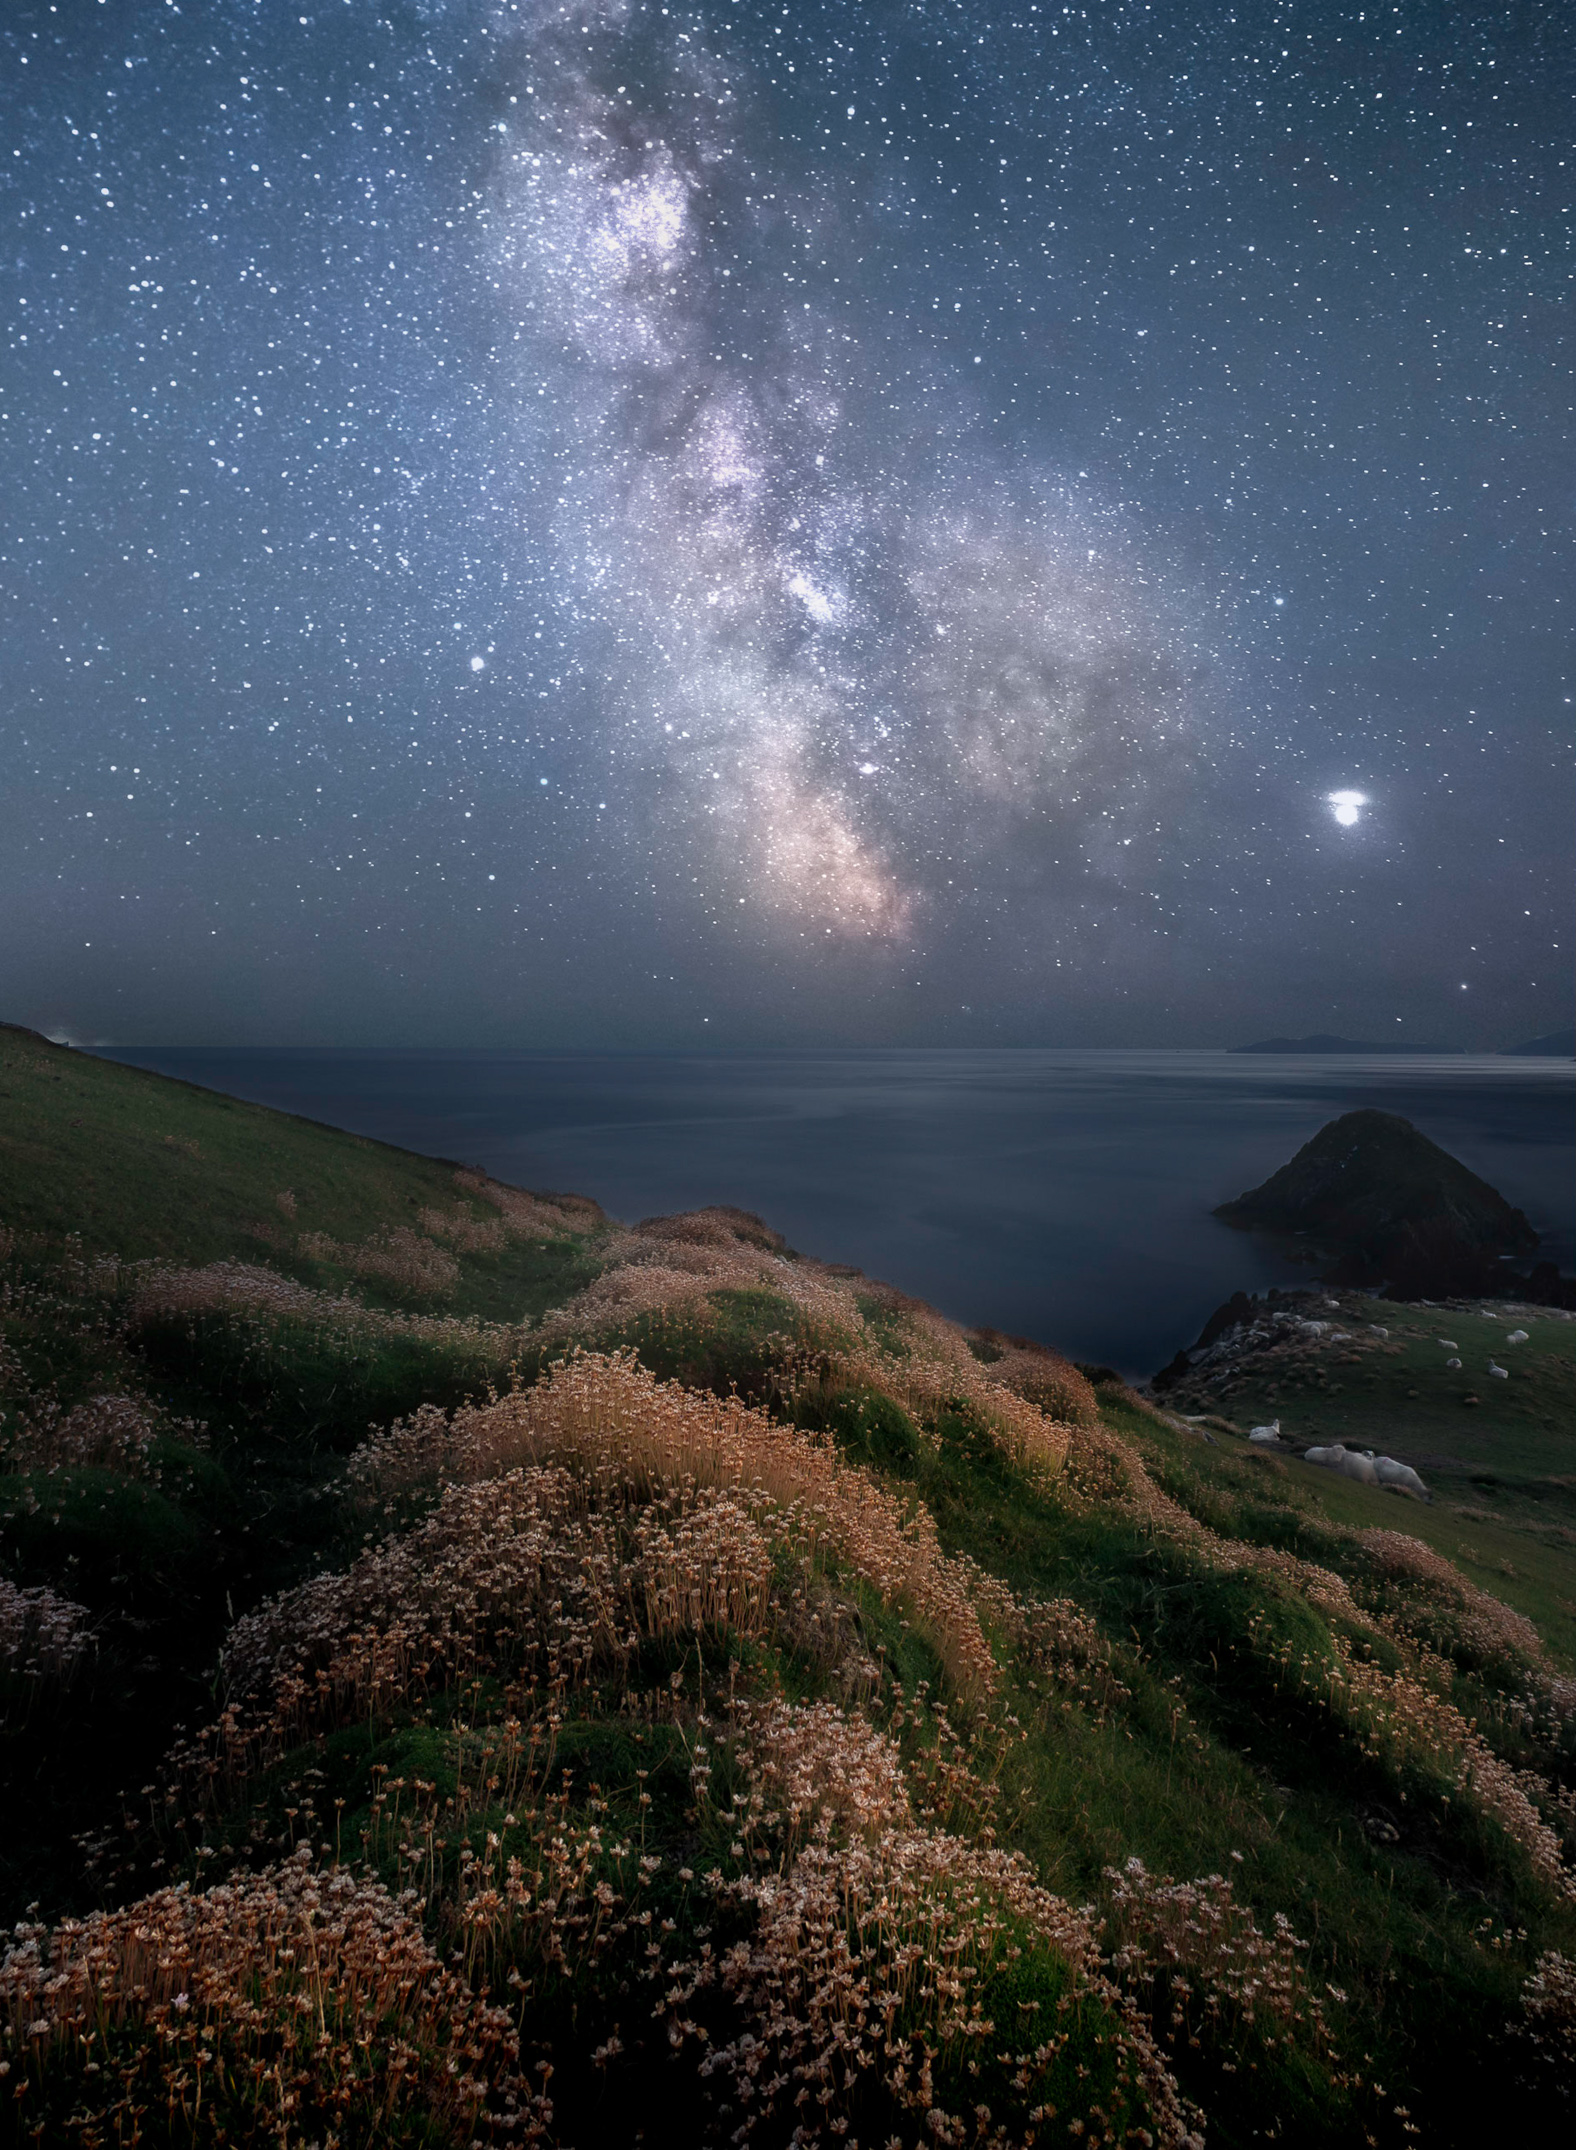 Milky Way over Dunmore Head in Dingle, Co Kerry